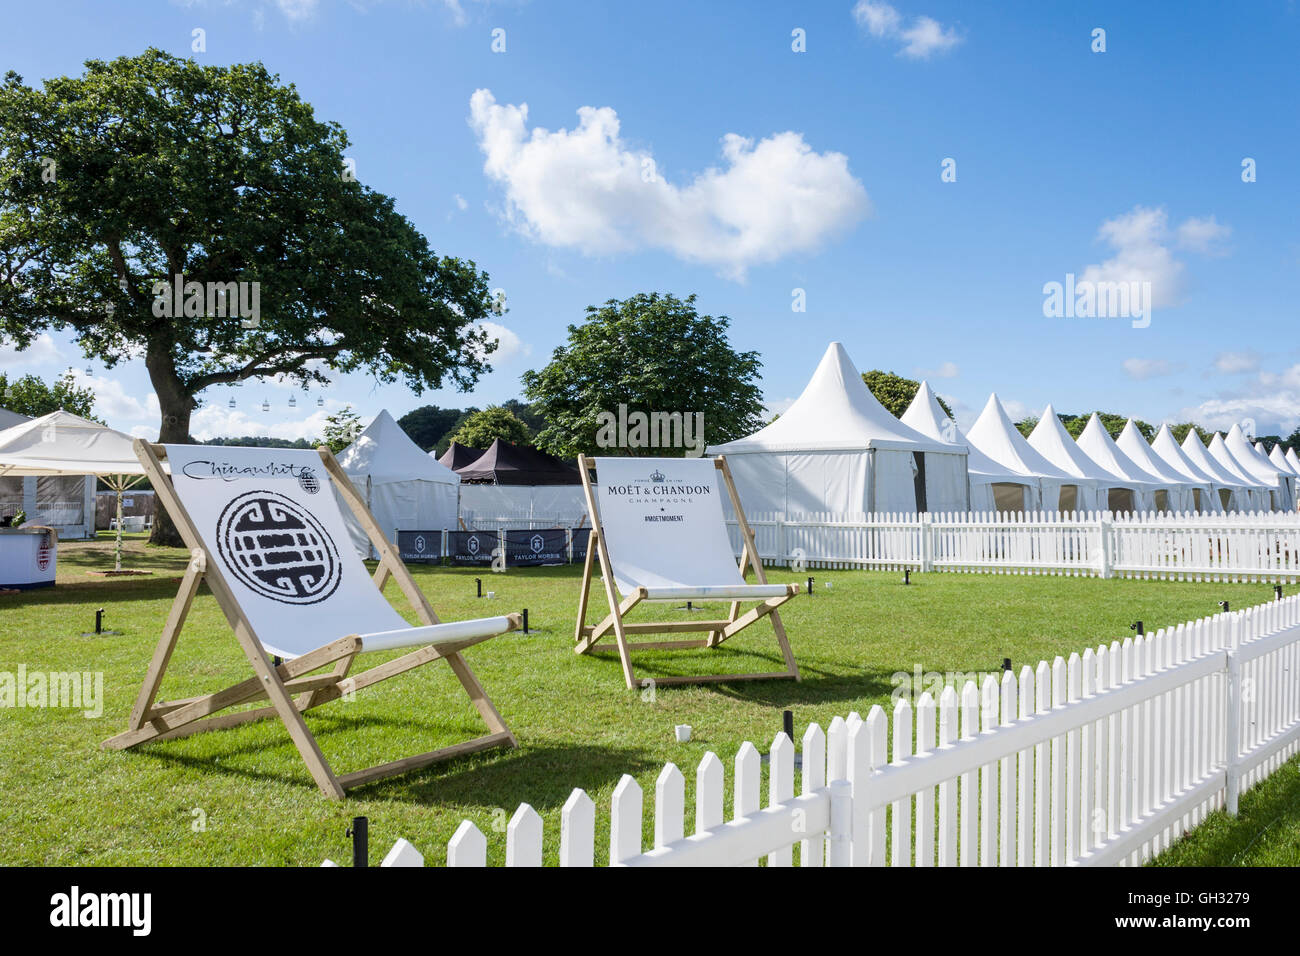 Giant deck chairs outside Corporate Hospitality tentage at Henley-on-Thames regatta, Oxfordshire, England, GB, UK. - Stock Image